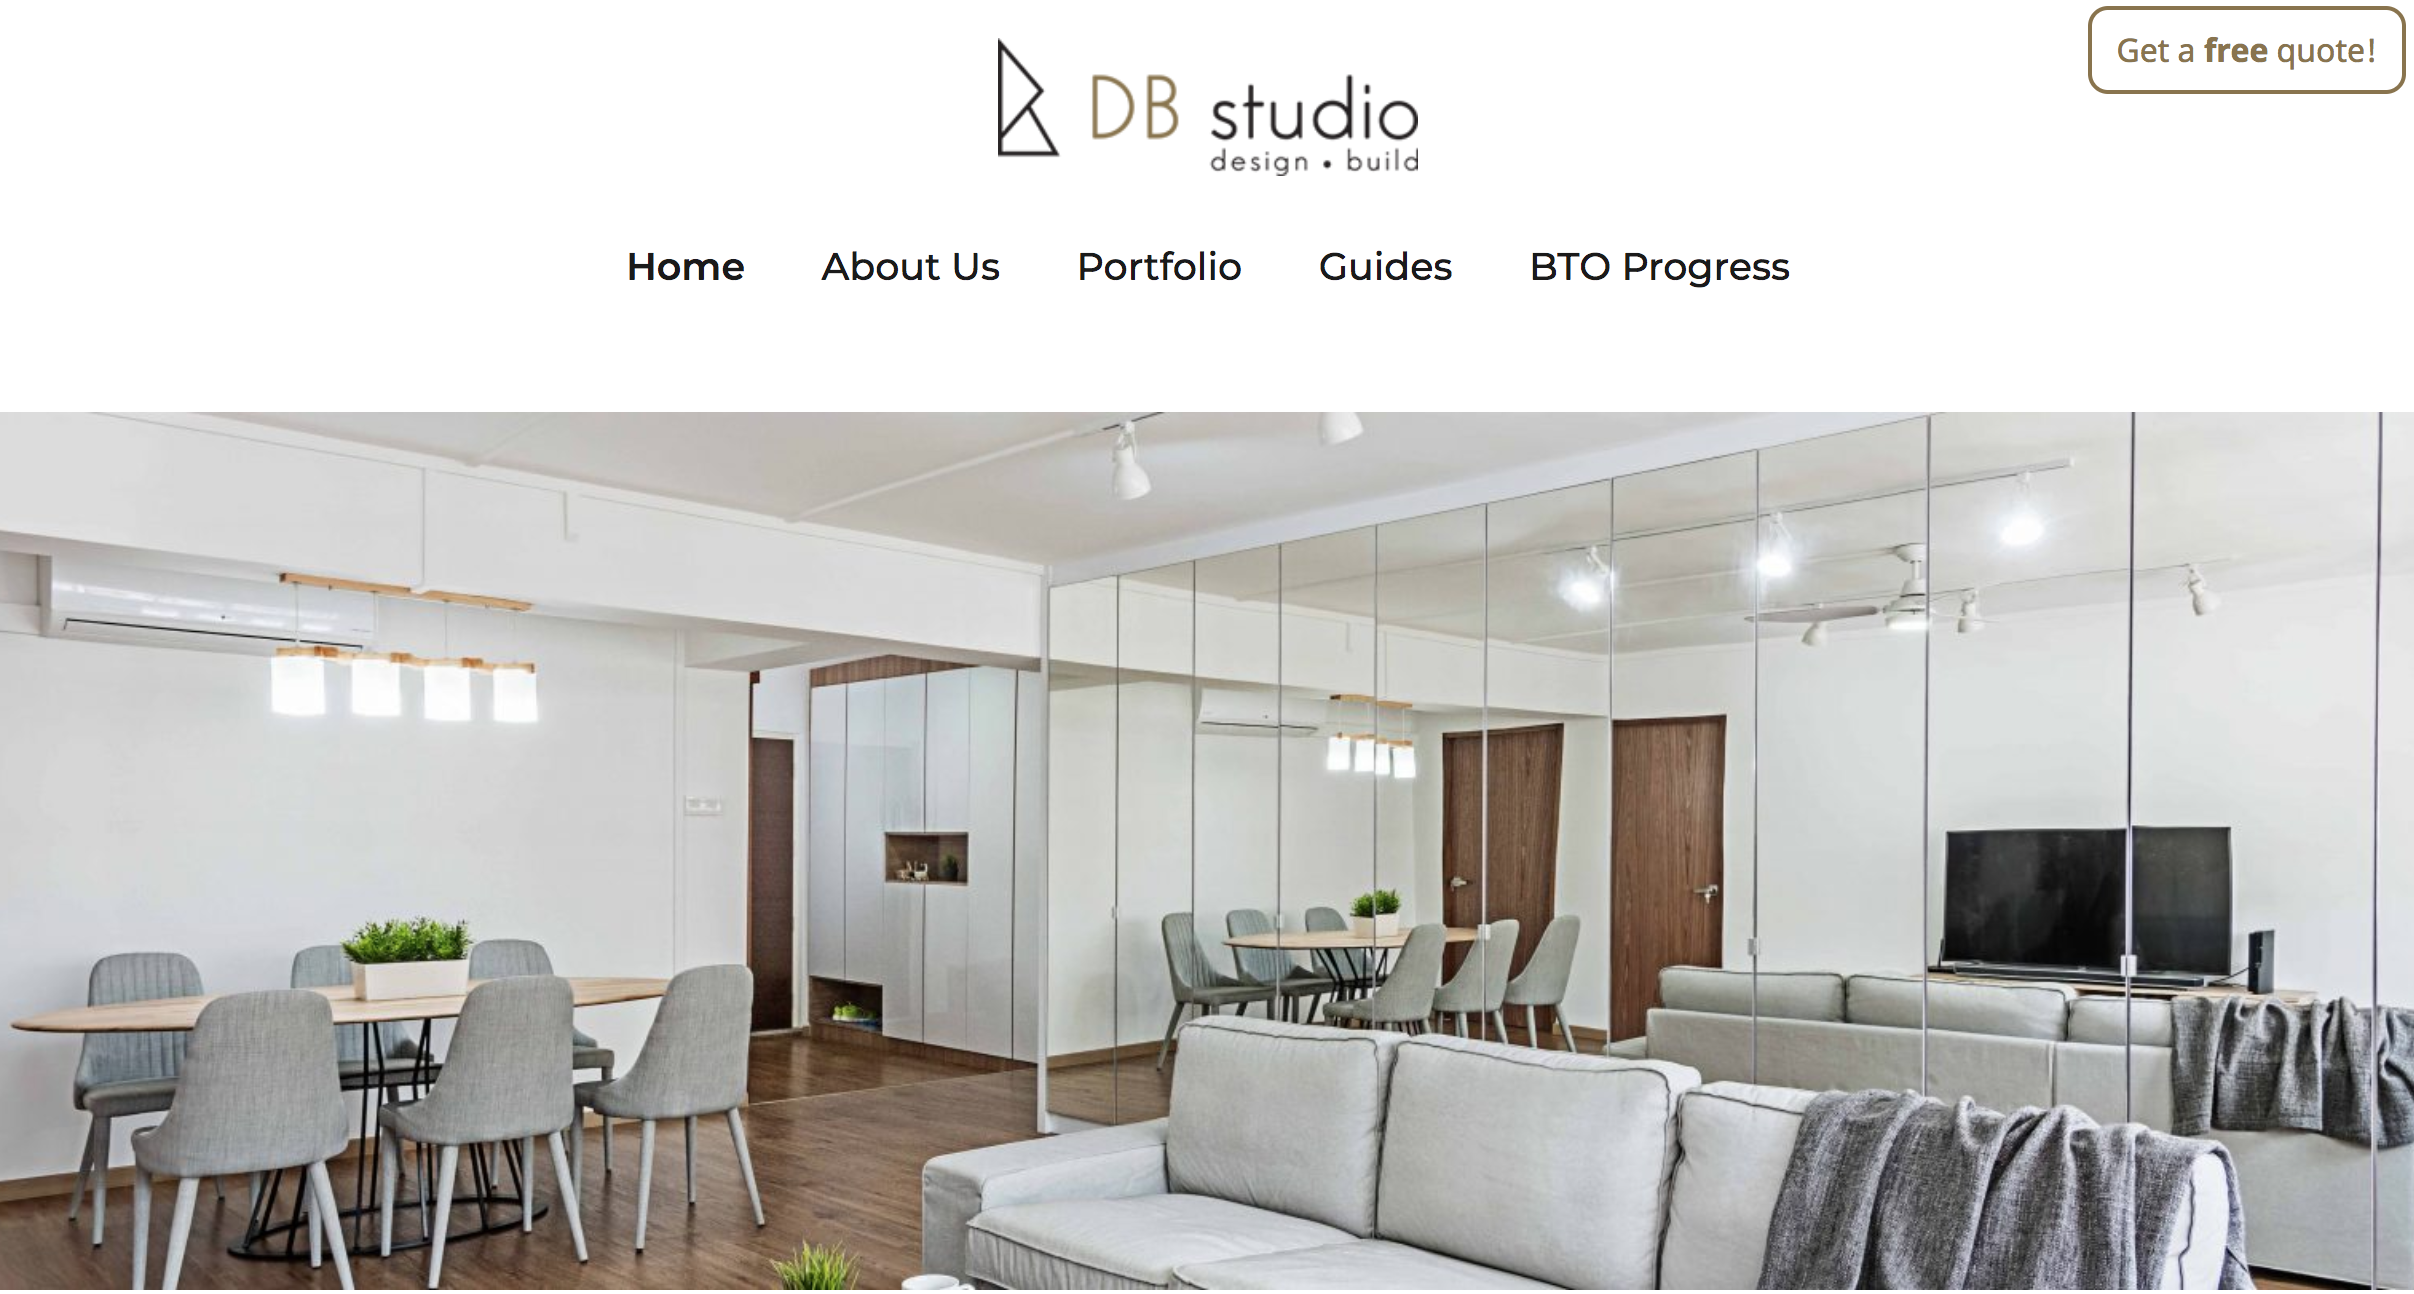 New Look, New Content for DB Studio